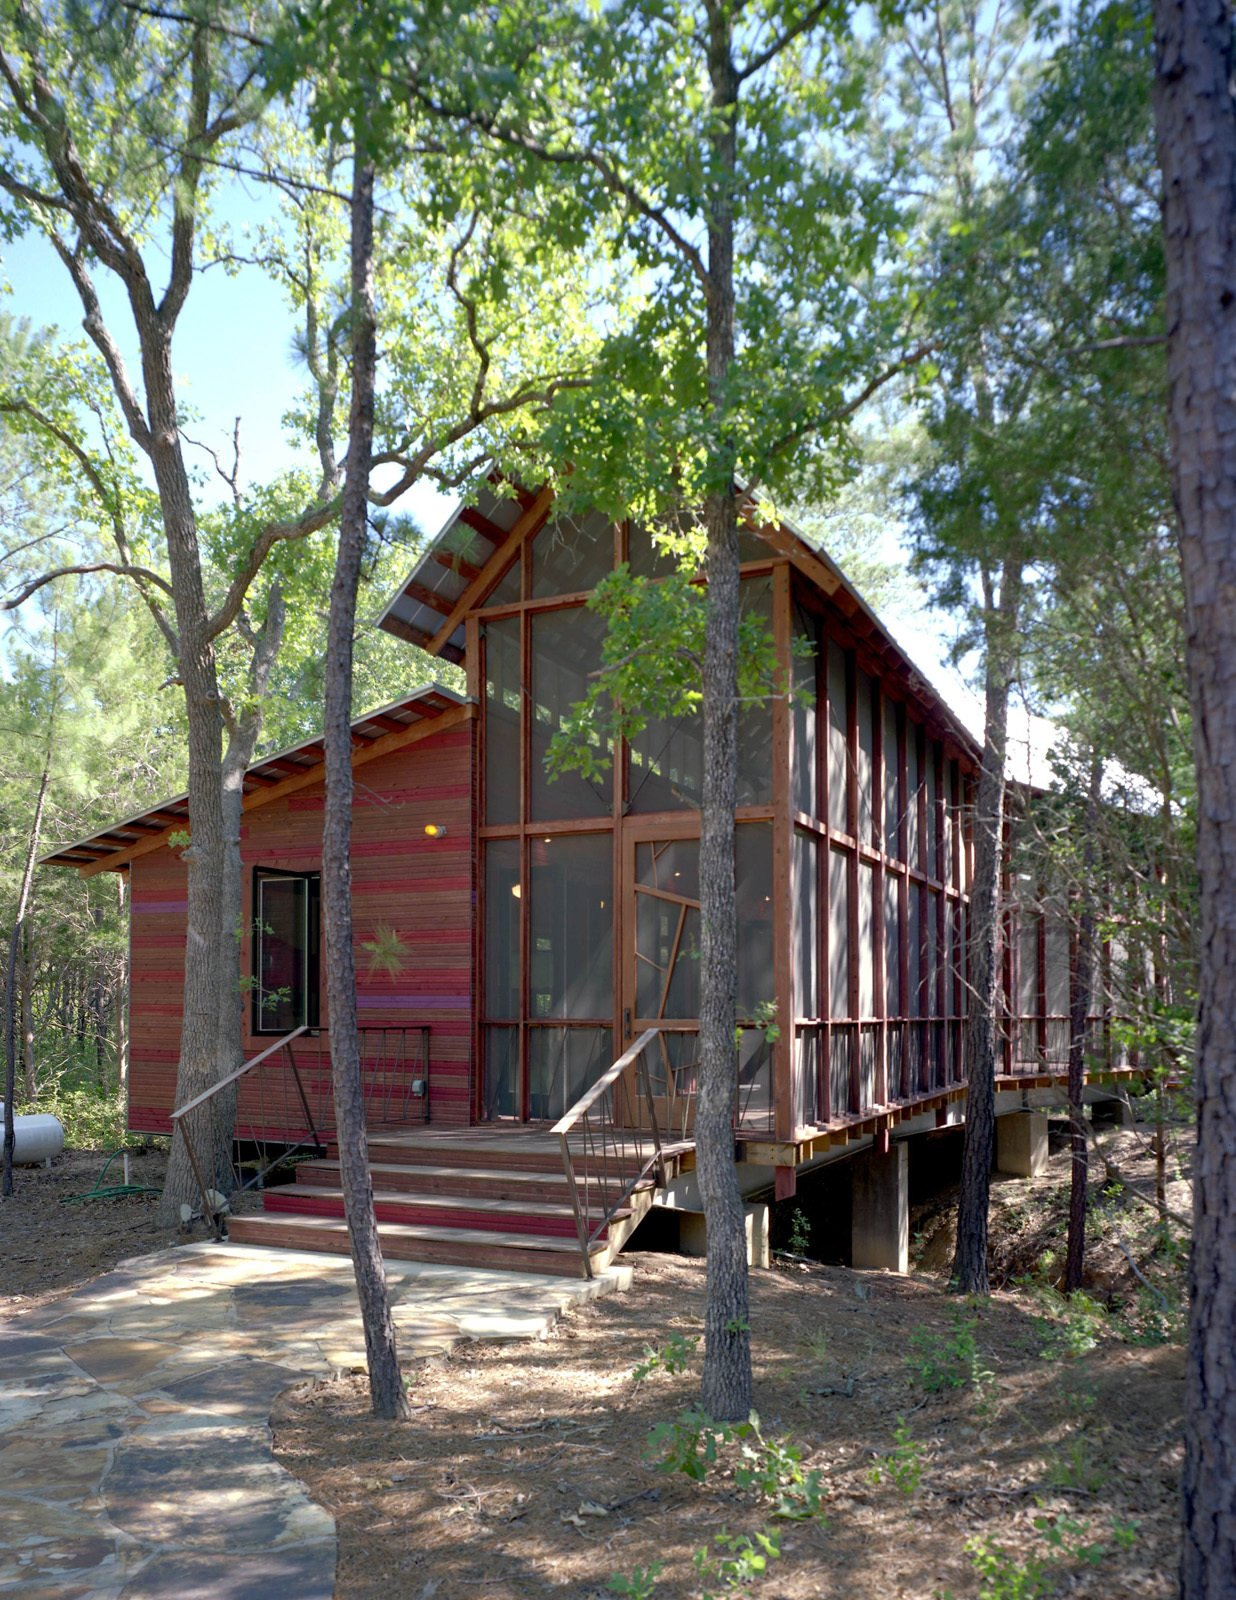 """A stone path leads from a gravel parking area to the entrance, fronted by a wide stair and small porch. """"Since we had to slot it in between so many trees with such vertical proportions, we decided our building would have vertical proportions,"""" says Panton. At left is the enclosed bunkroom, with the double-height screen porch at right.  Texas Bunkhouse by Erika Heet"""